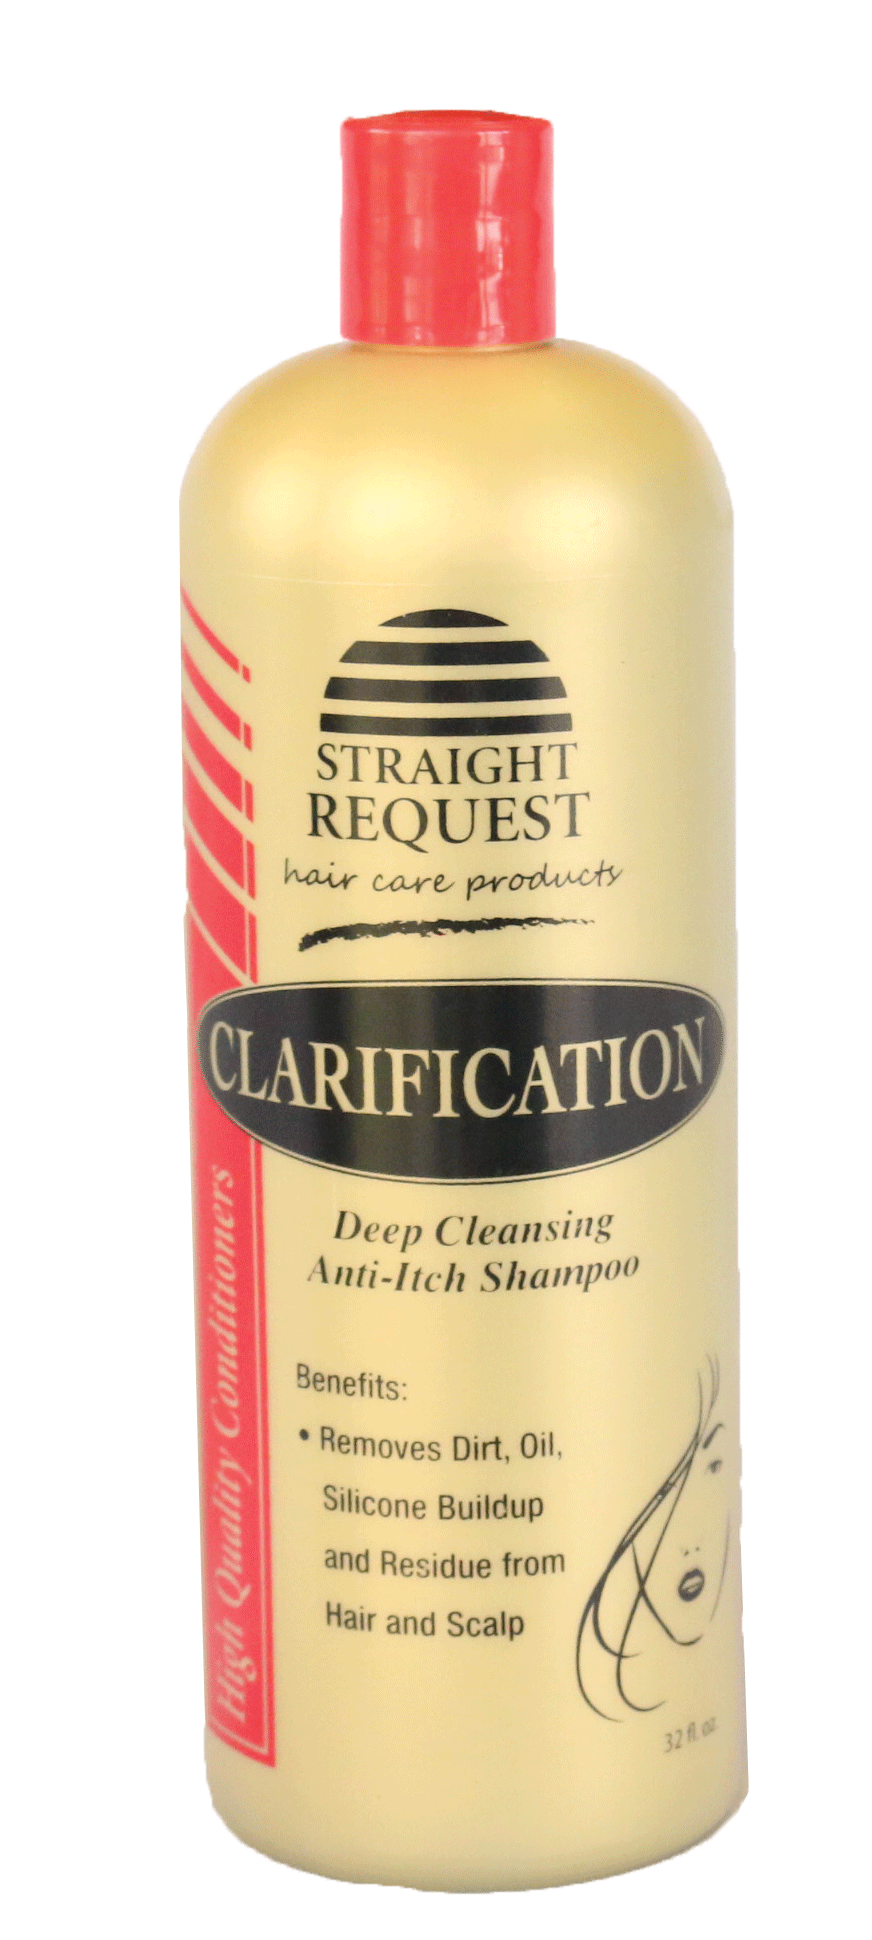 Clarification Deep Cleansing Shampoo - 32oz